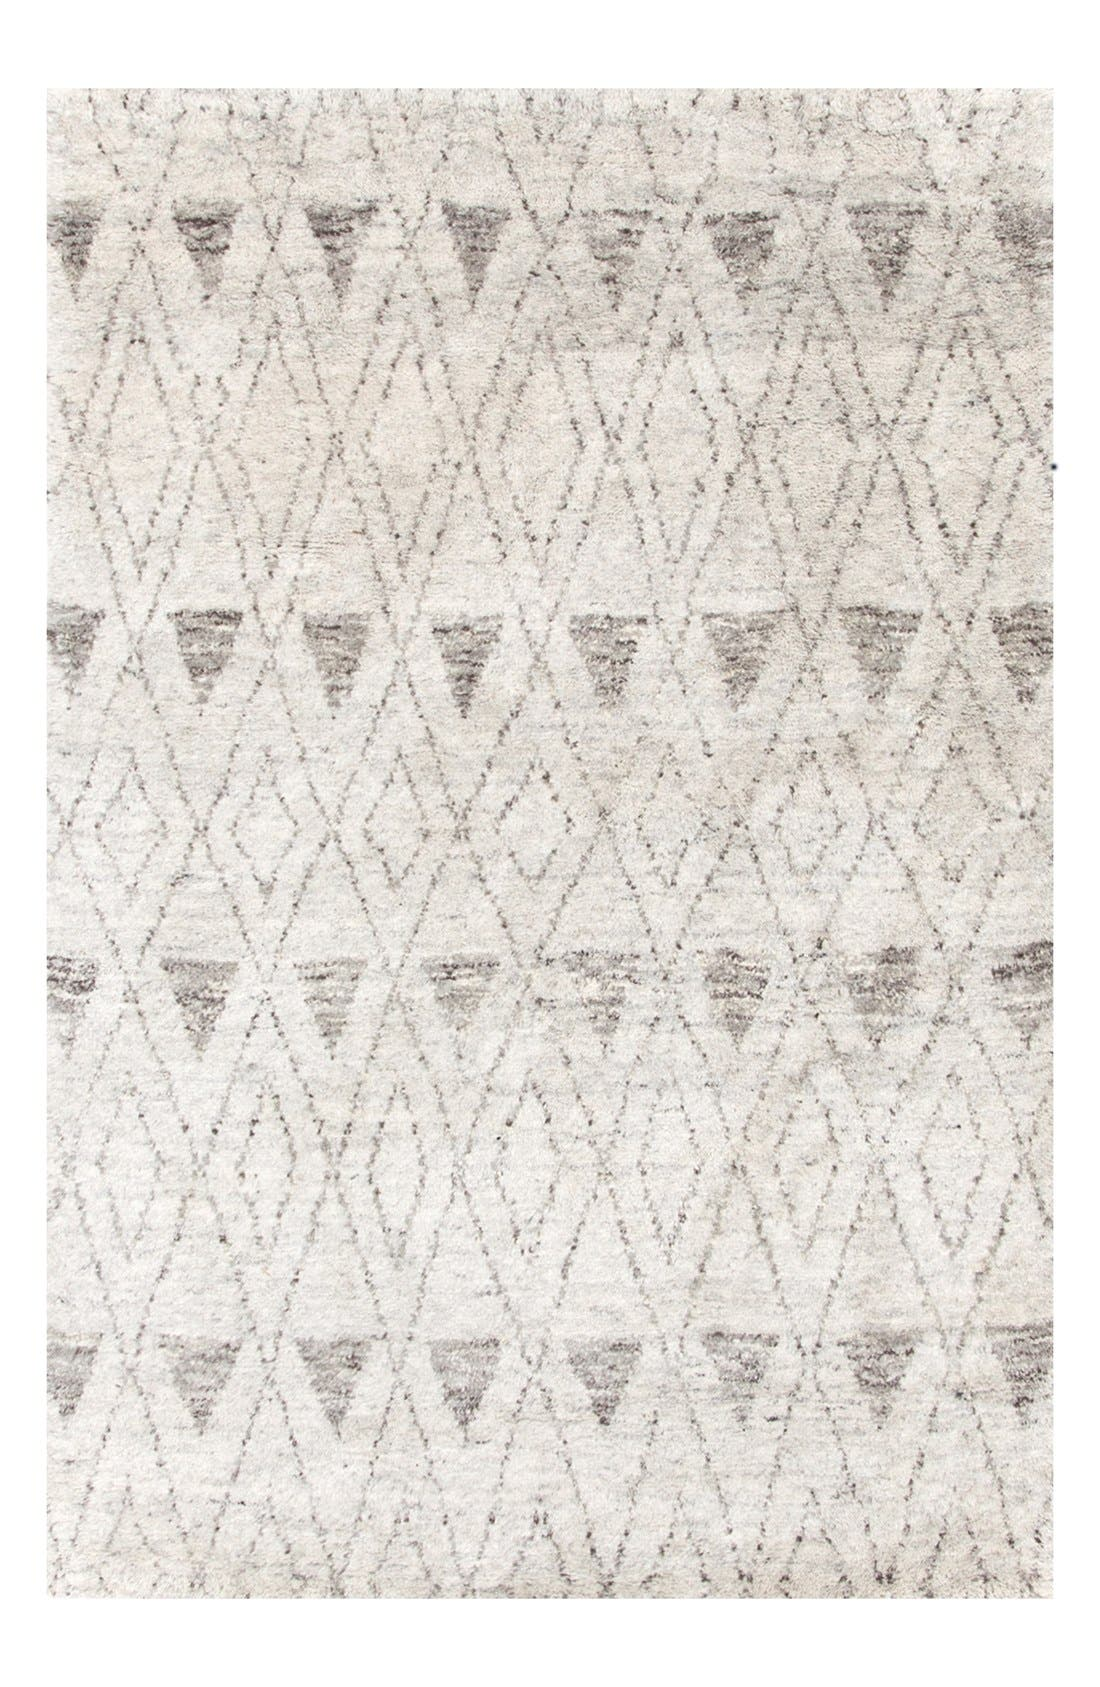 'Masinissa' Hand Knotted Rug,                             Alternate thumbnail 3, color,                             GREY/ MULTI